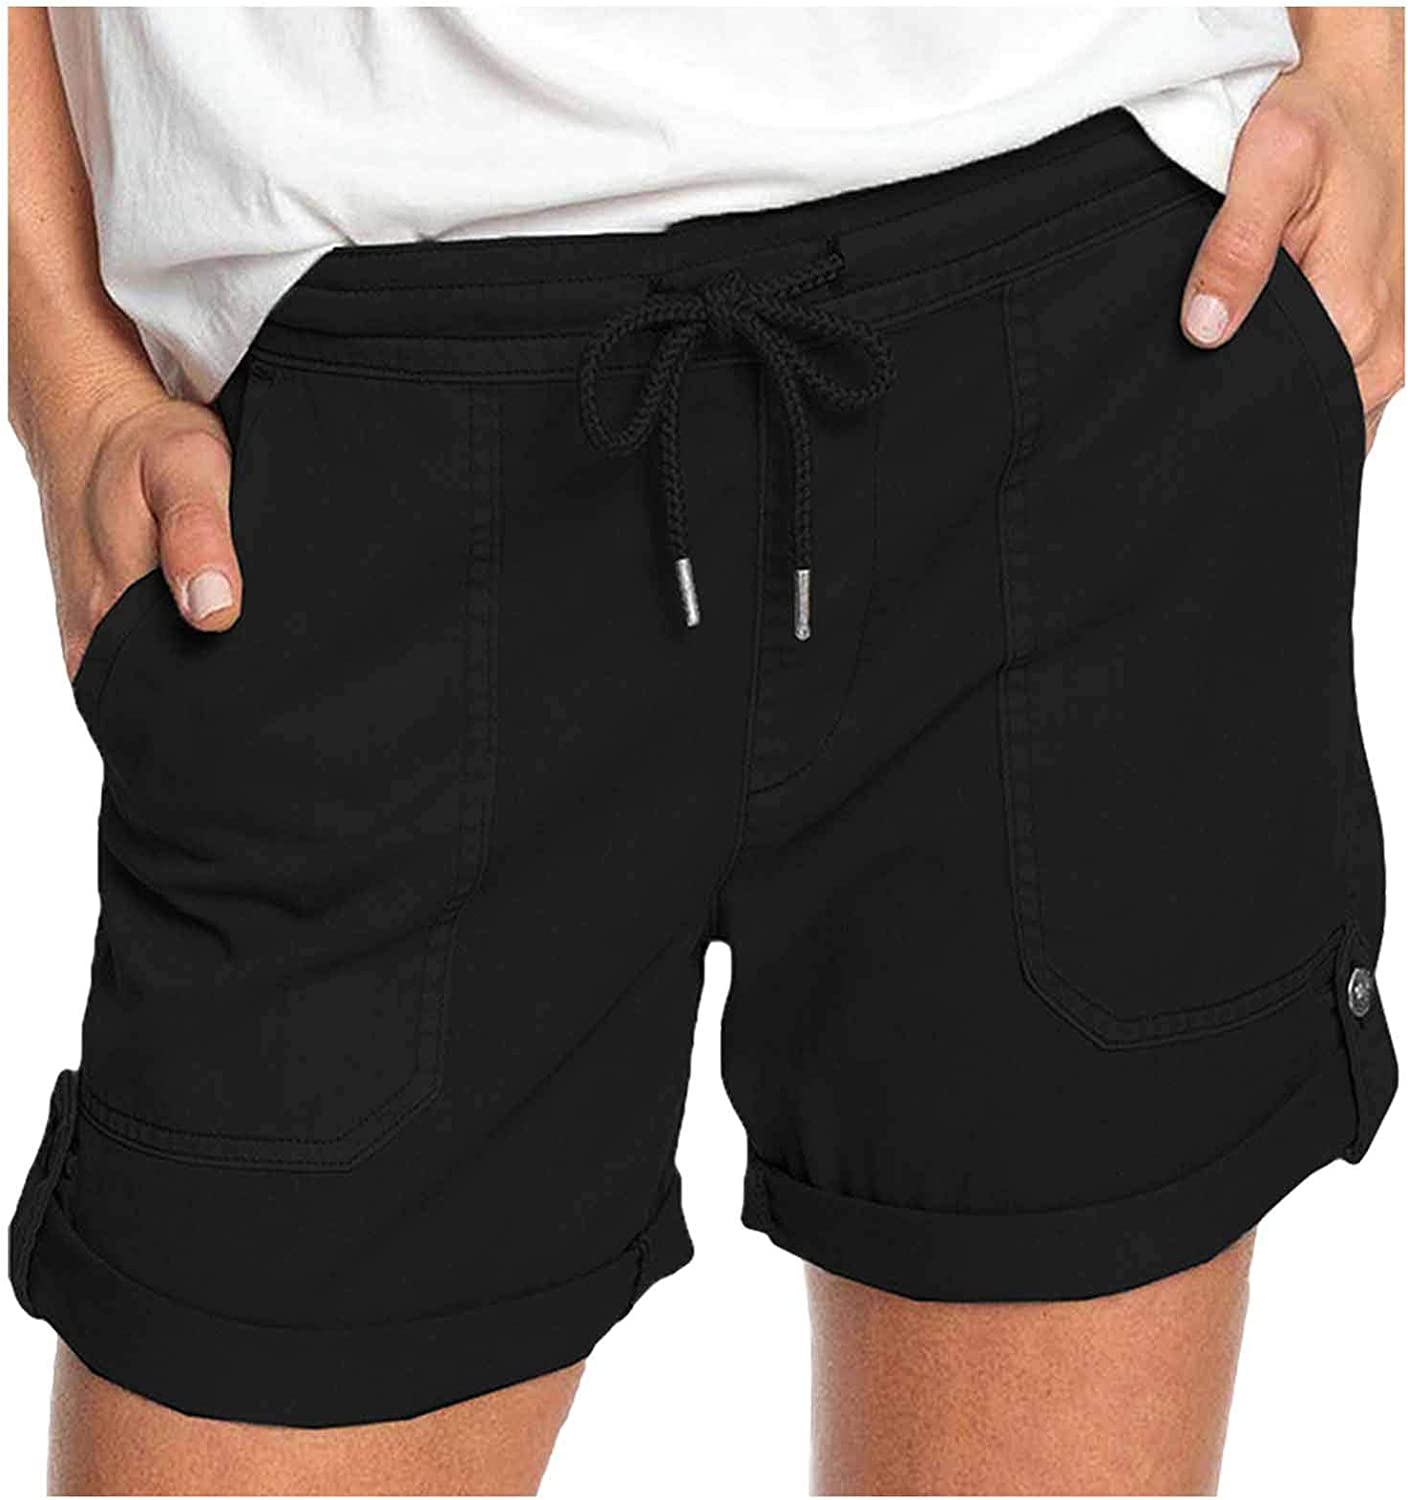 FUNEY Women Comfy Drawstring Casual Elastic Waist Cotton Shorts with Pockets,Workout Short Pants,Womens Shorts Casual S-5XL